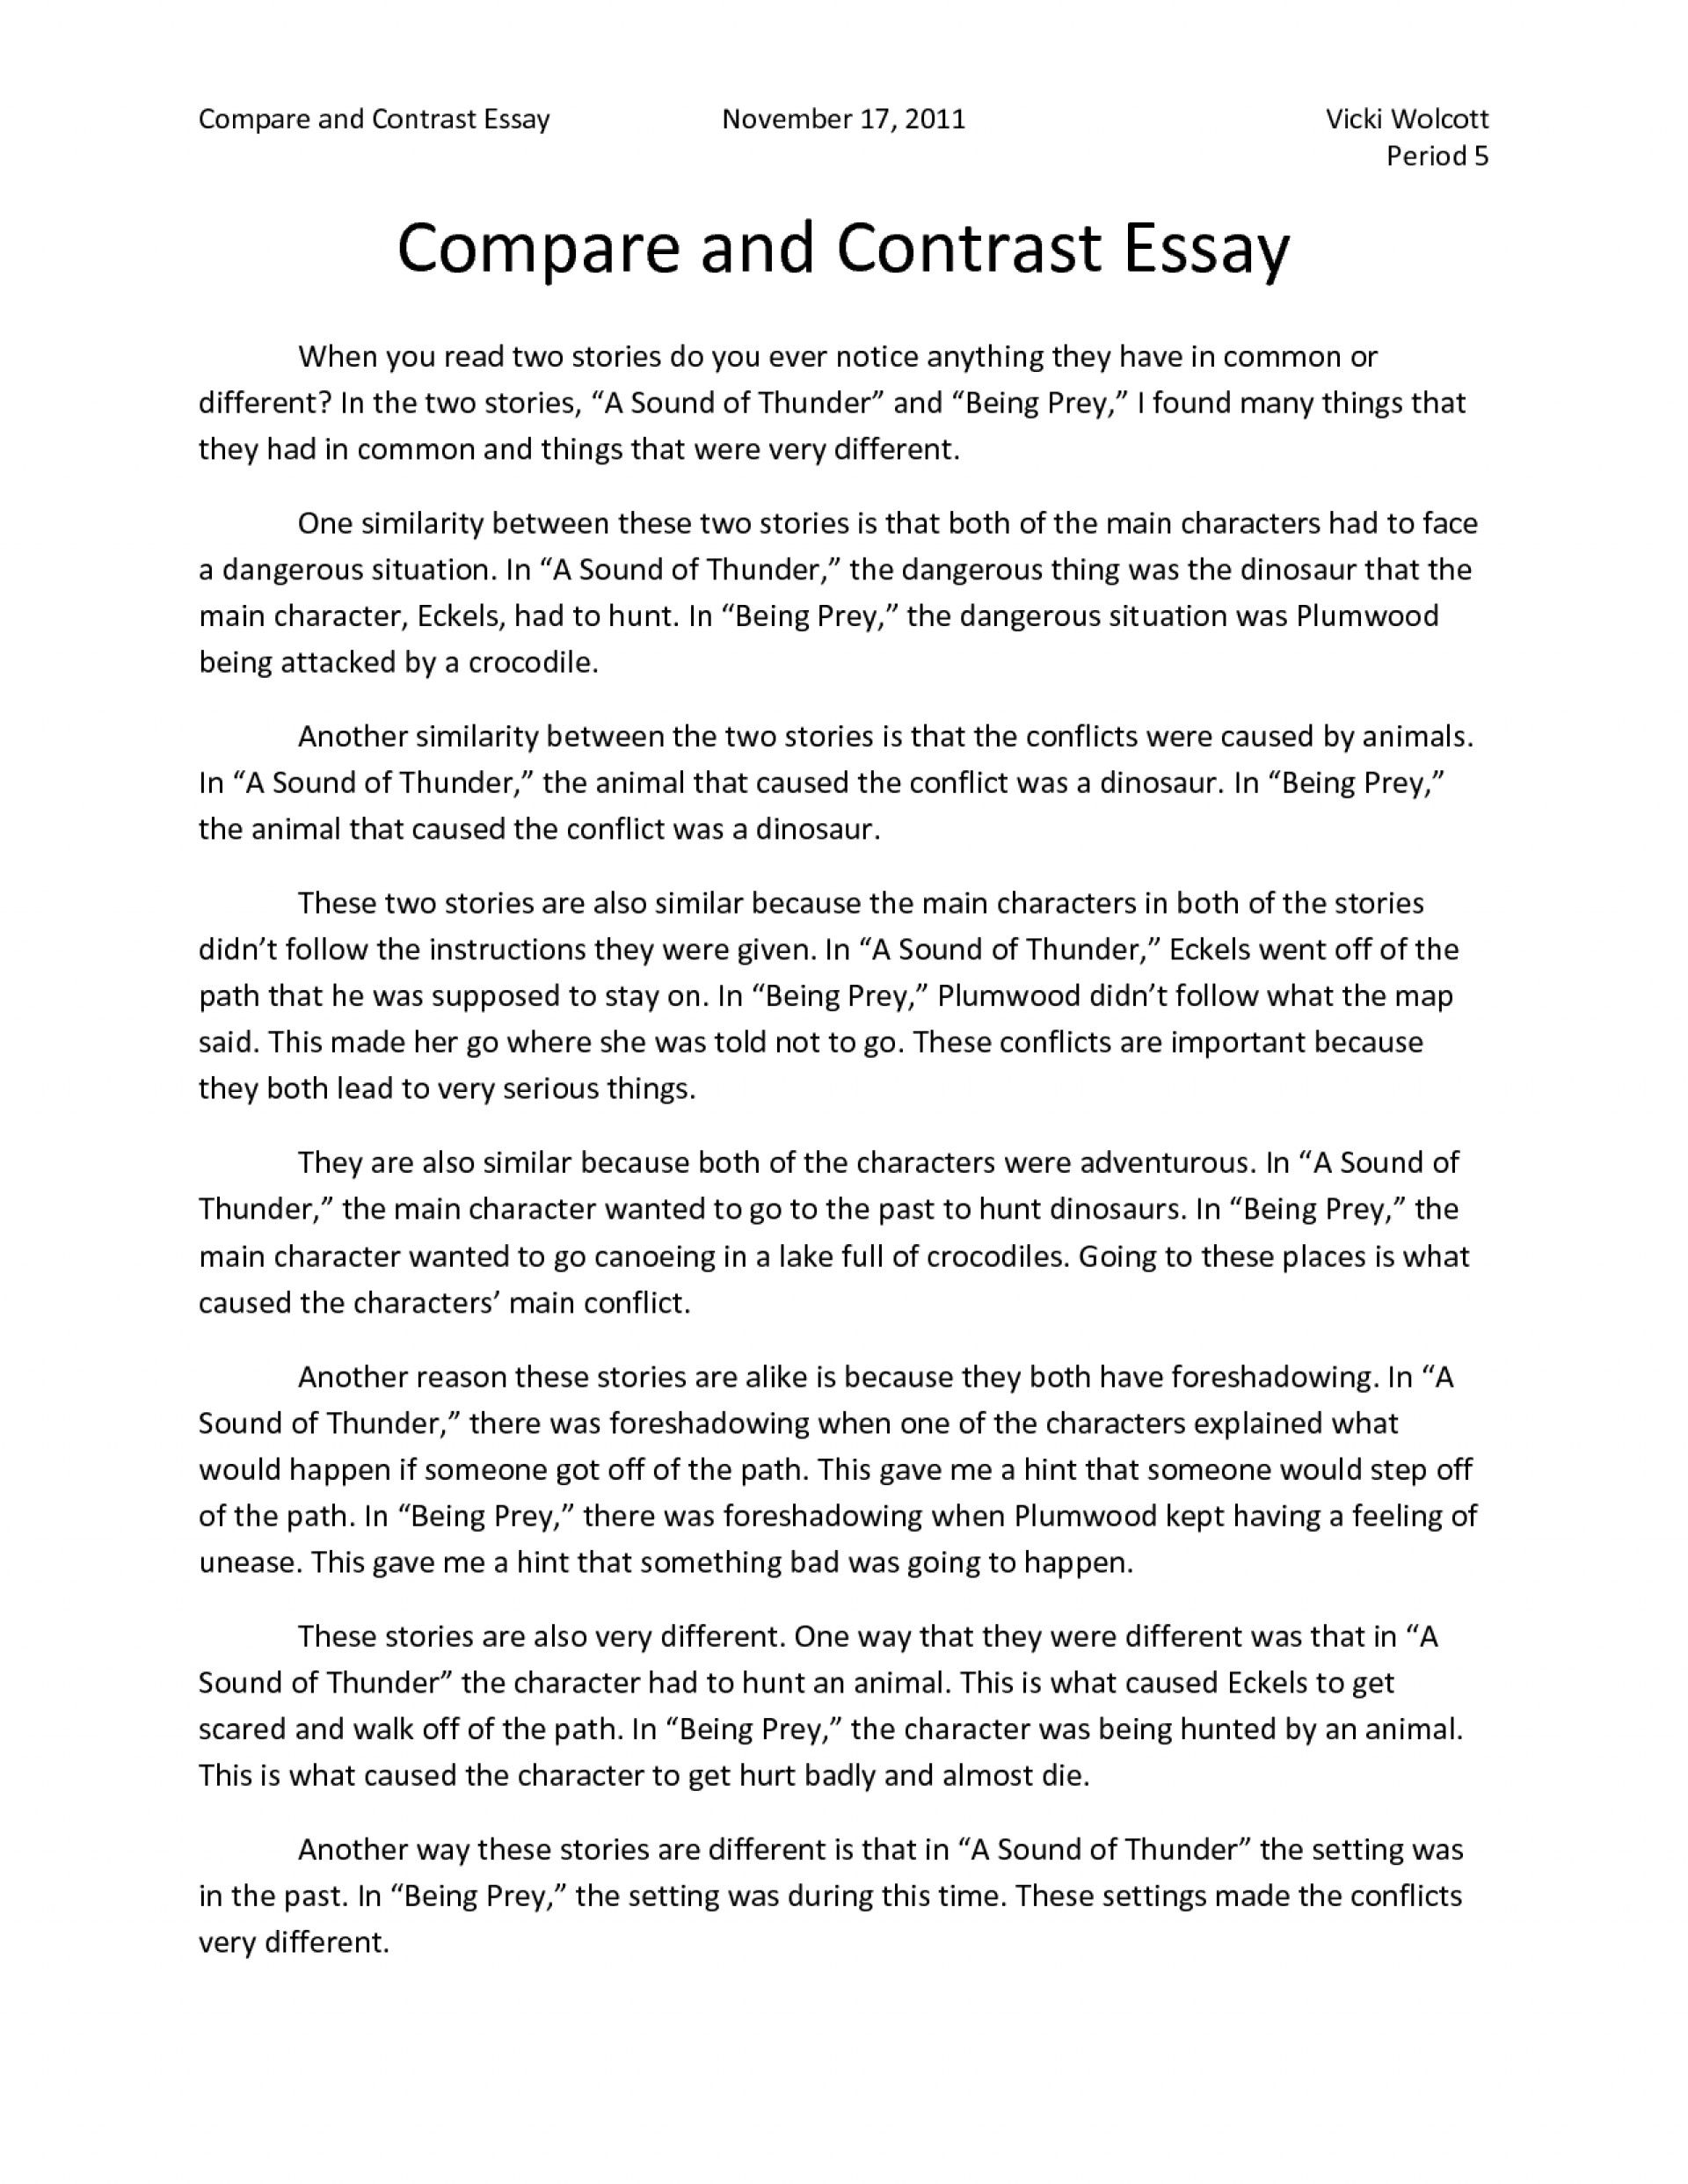 004 Examples Of Compare And Contrast Essays Perfect Essay Introduction Example College  Unique Samples For Comparison Topics Fifth Grade1920